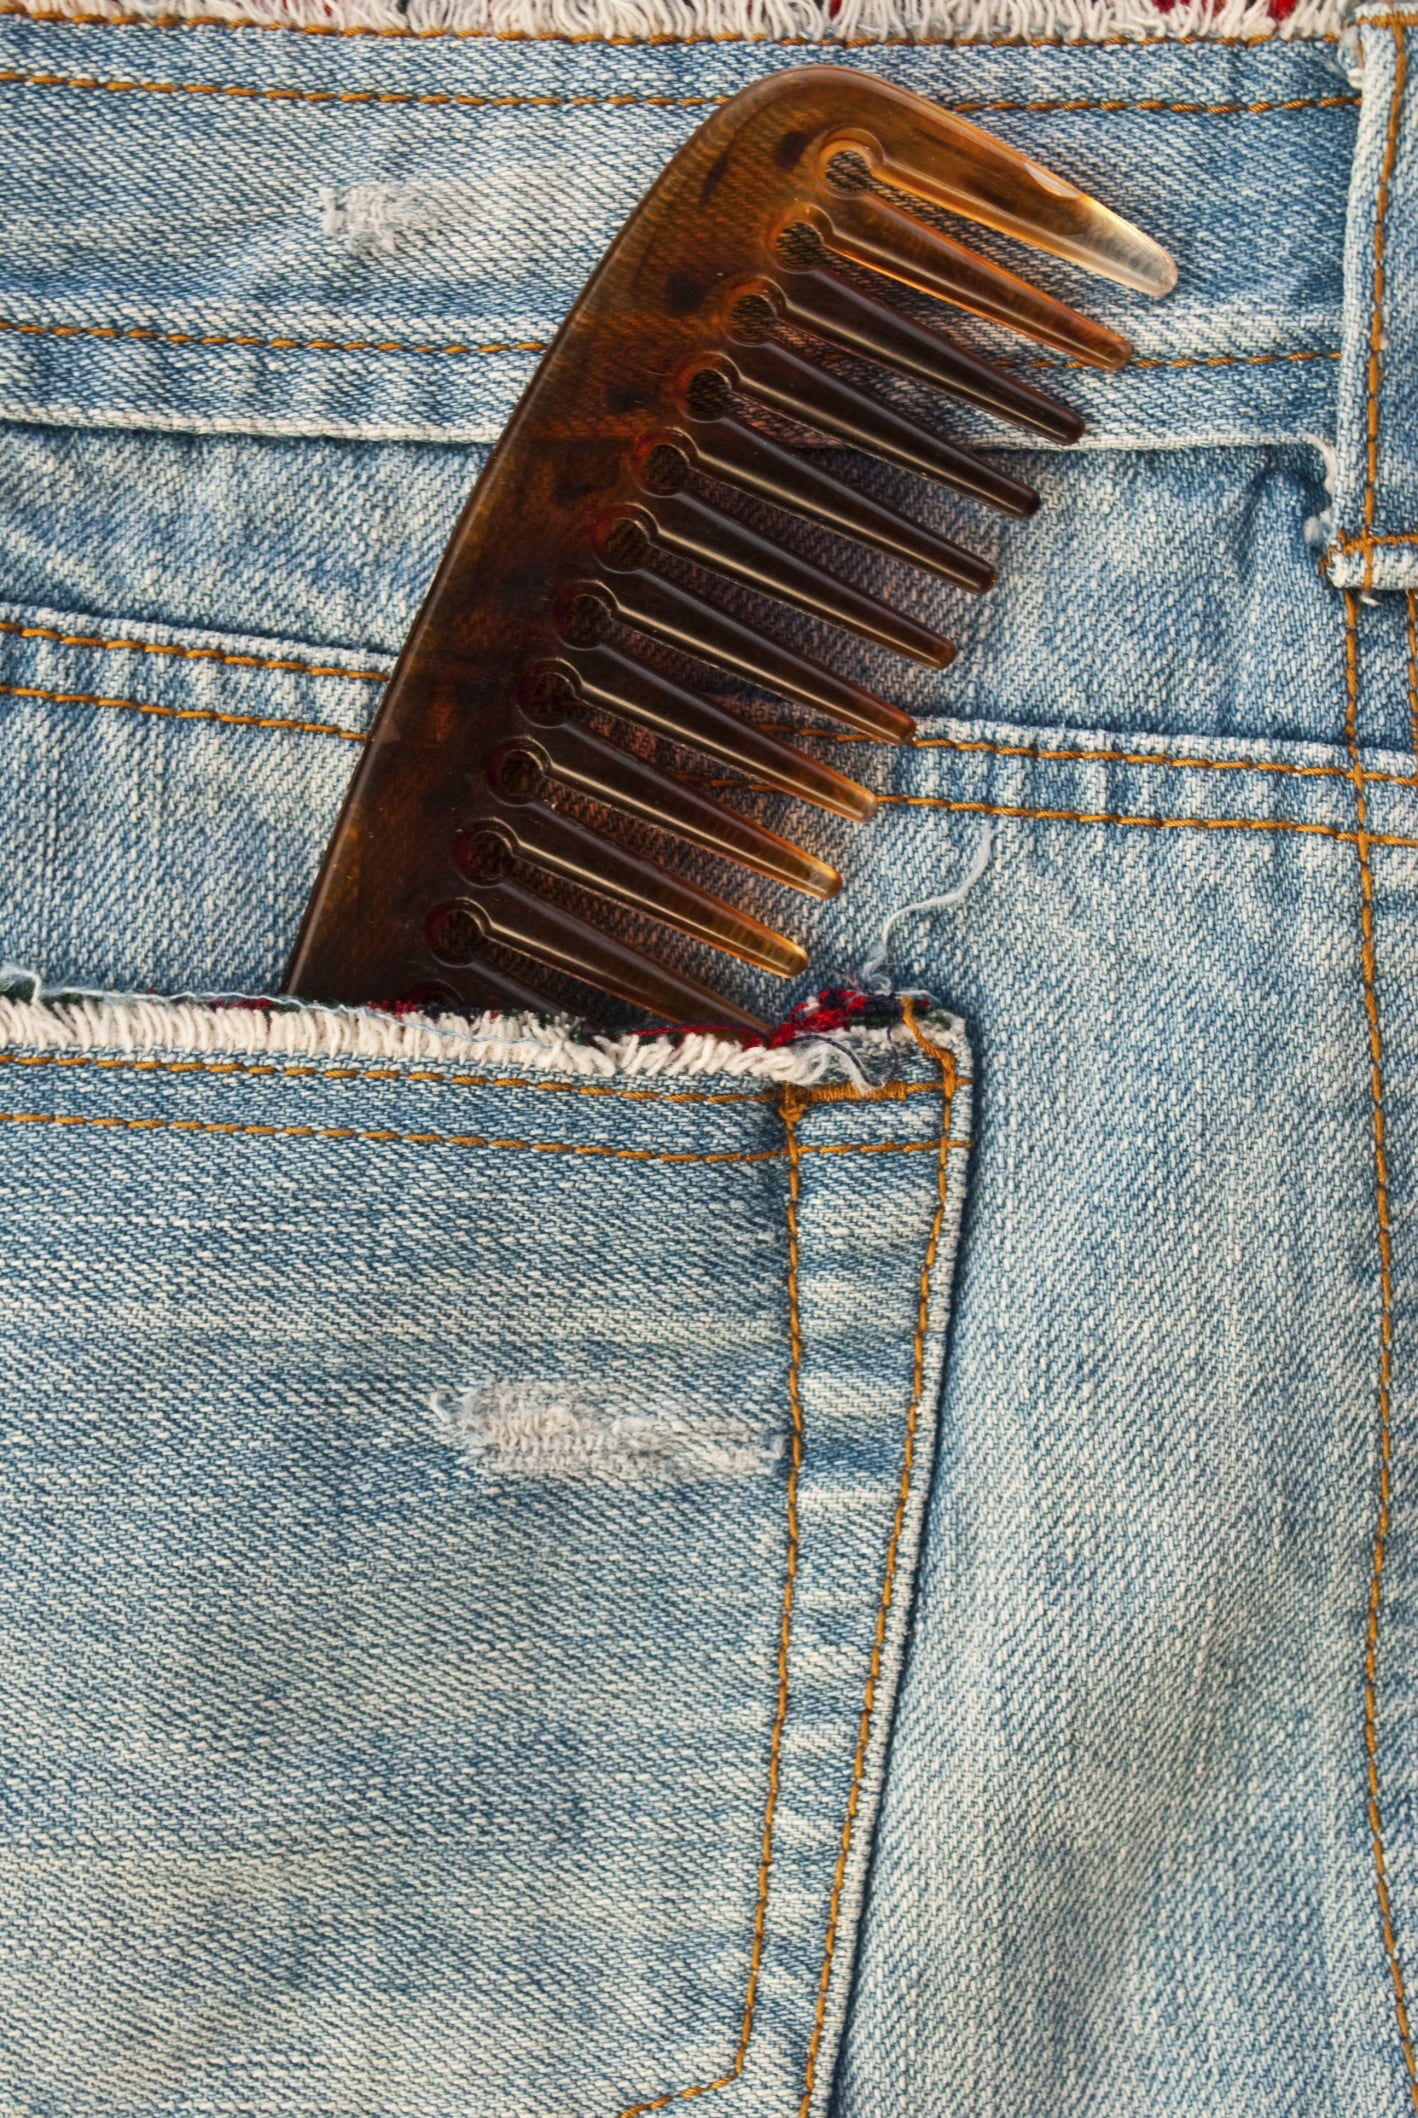 Spring-Clean: Your Comb